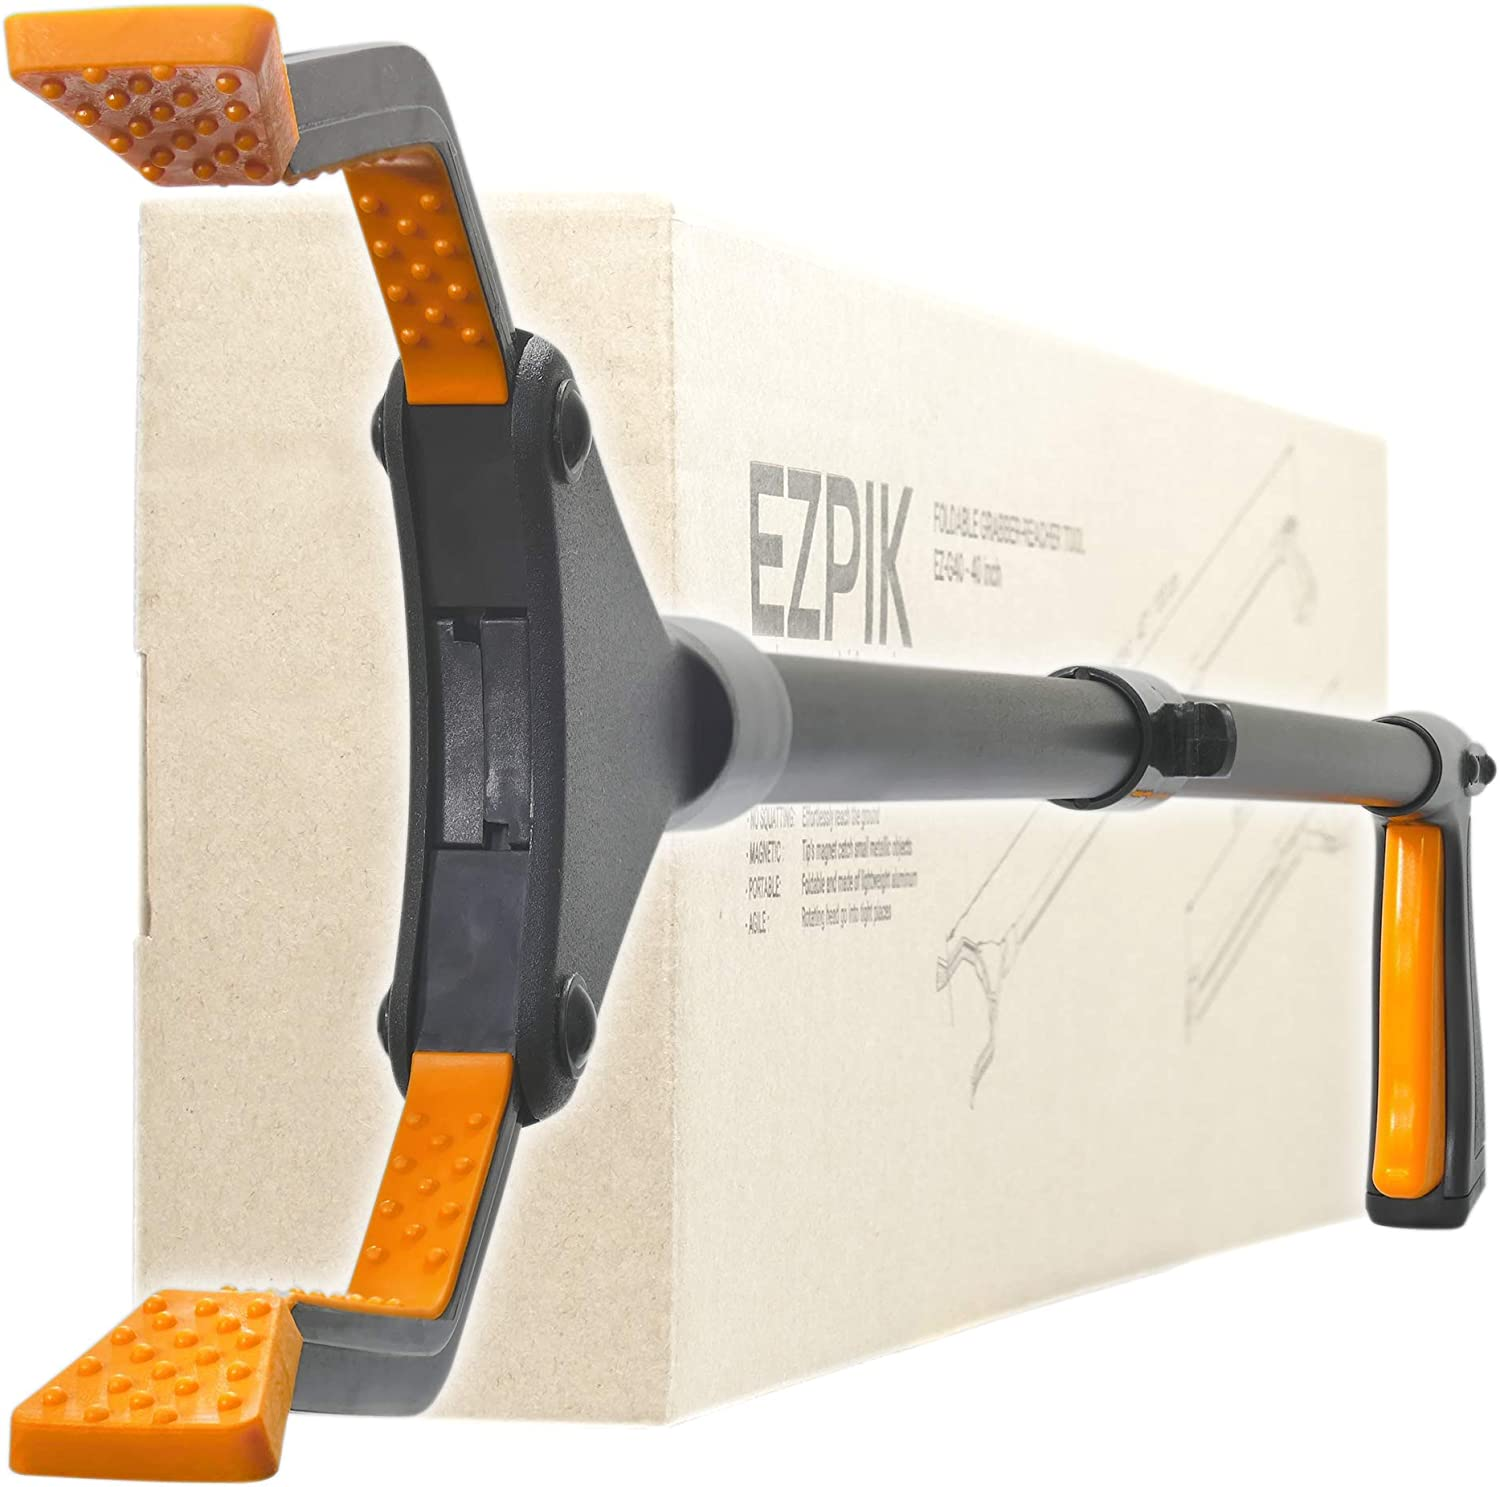 "EZPIK 40"" Extra-Long Grabber-Reacher Tool, Foldable Reaching Aid for Elderly, Heavy-Duty Handheld Pickup-Stick & Trash Picker-Upper (v2.0)"